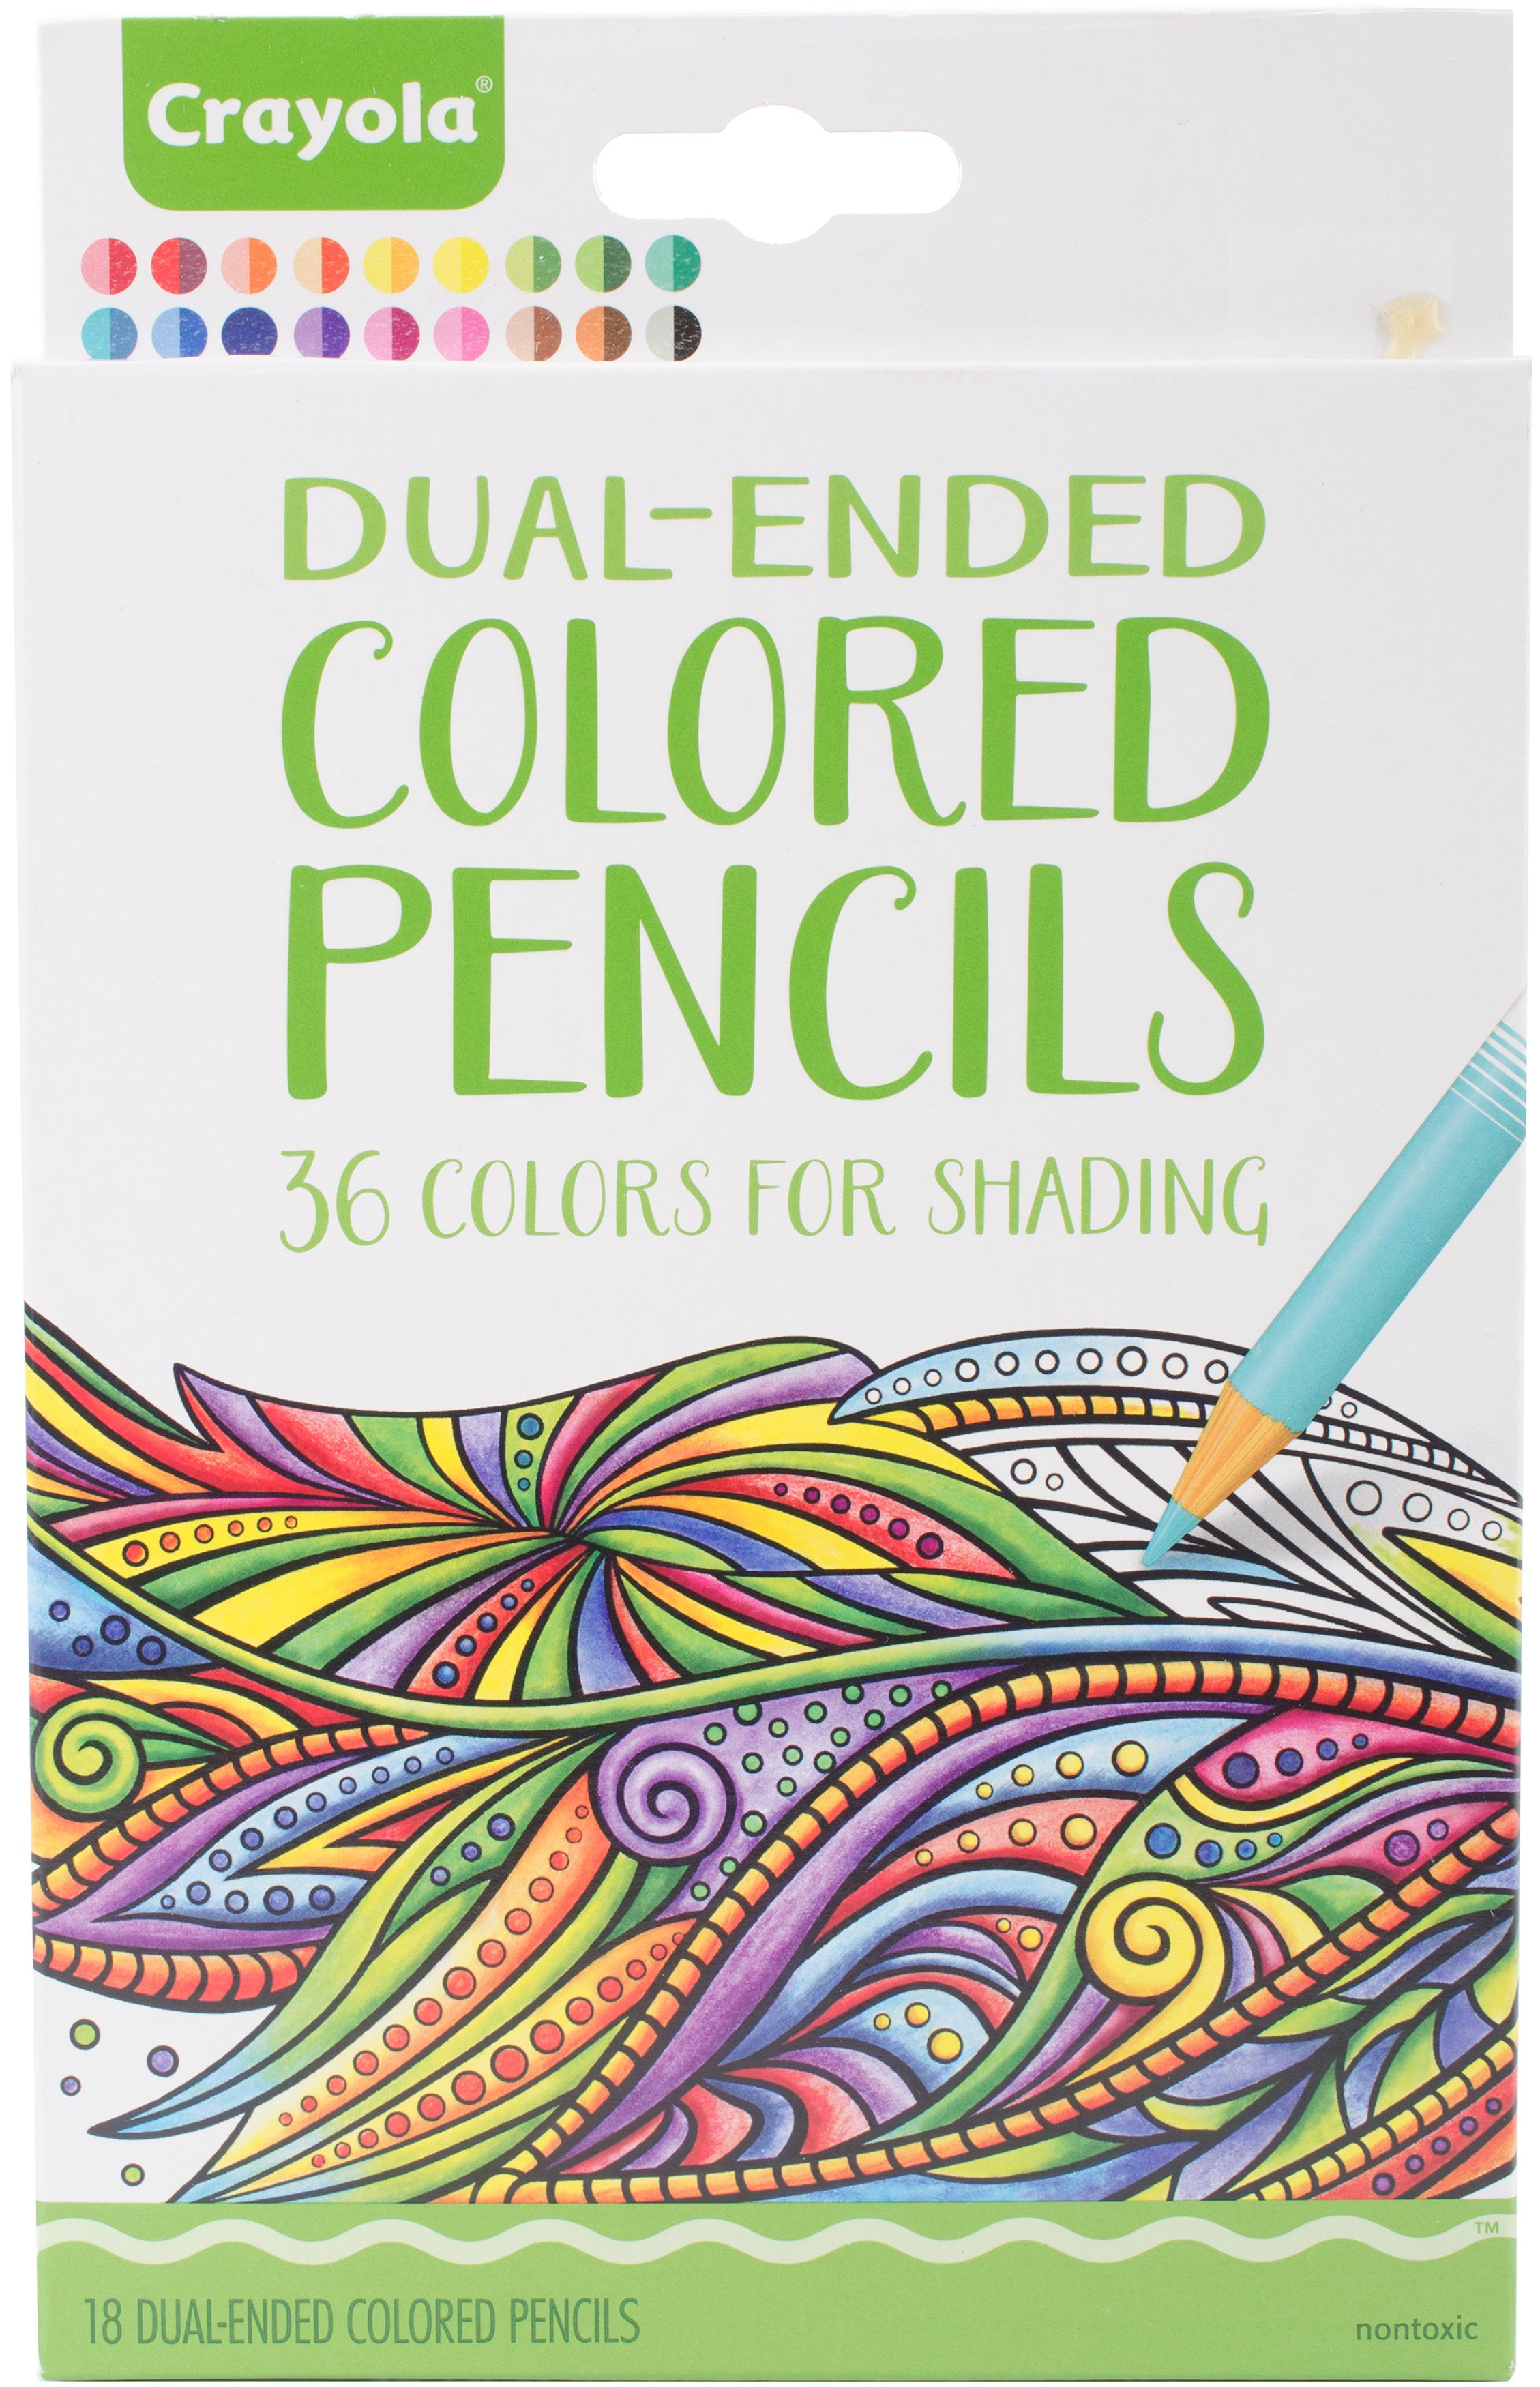 Crayola Dual-Ended Colored Pencils For Shading - Walmart.com